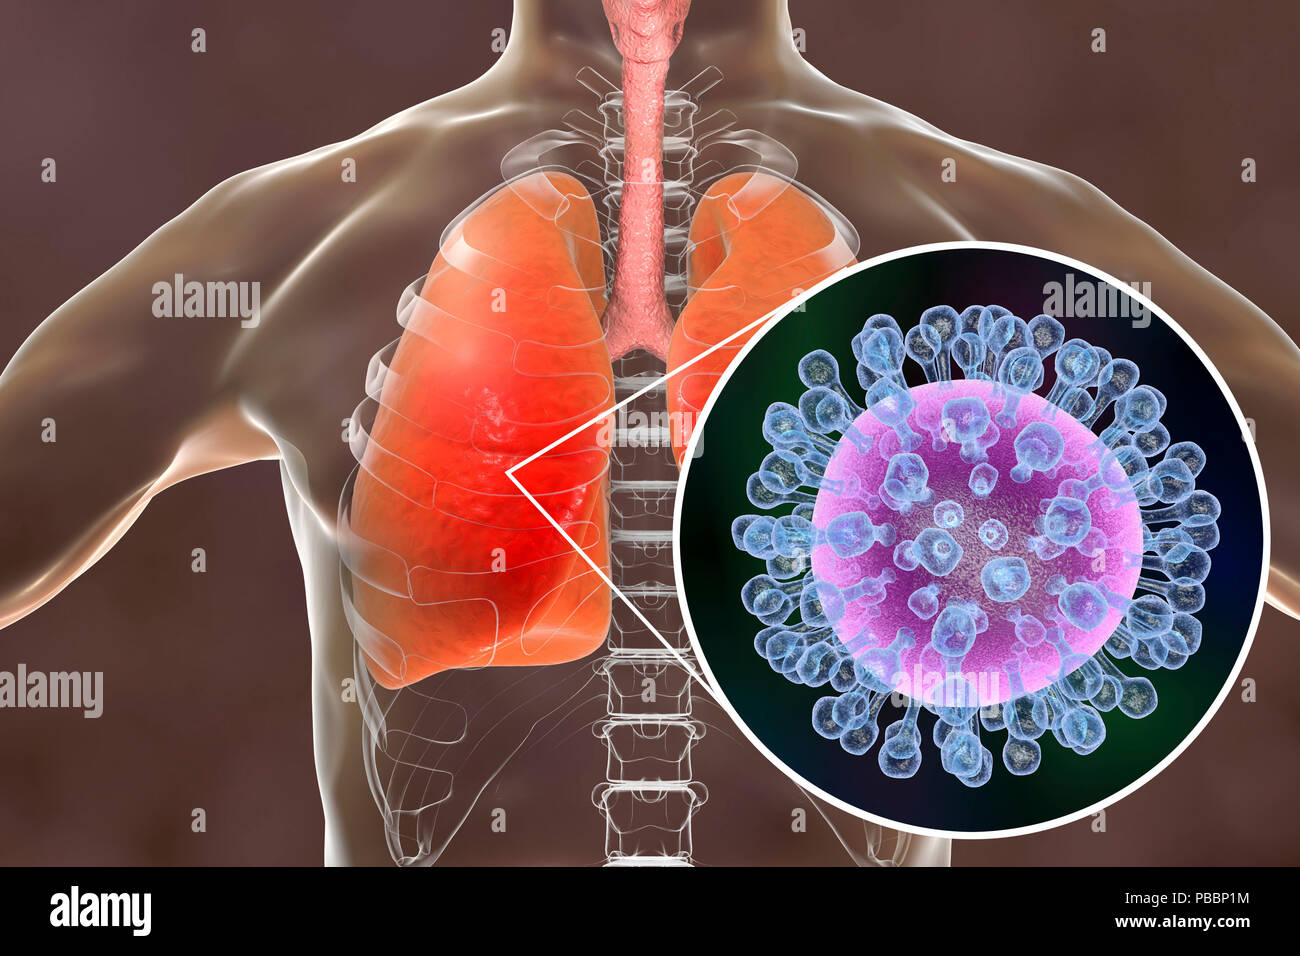 Pneumonia caused by flu, computer illustration. Pneumonia is one of the common complications of a flu infection. Stock Photo